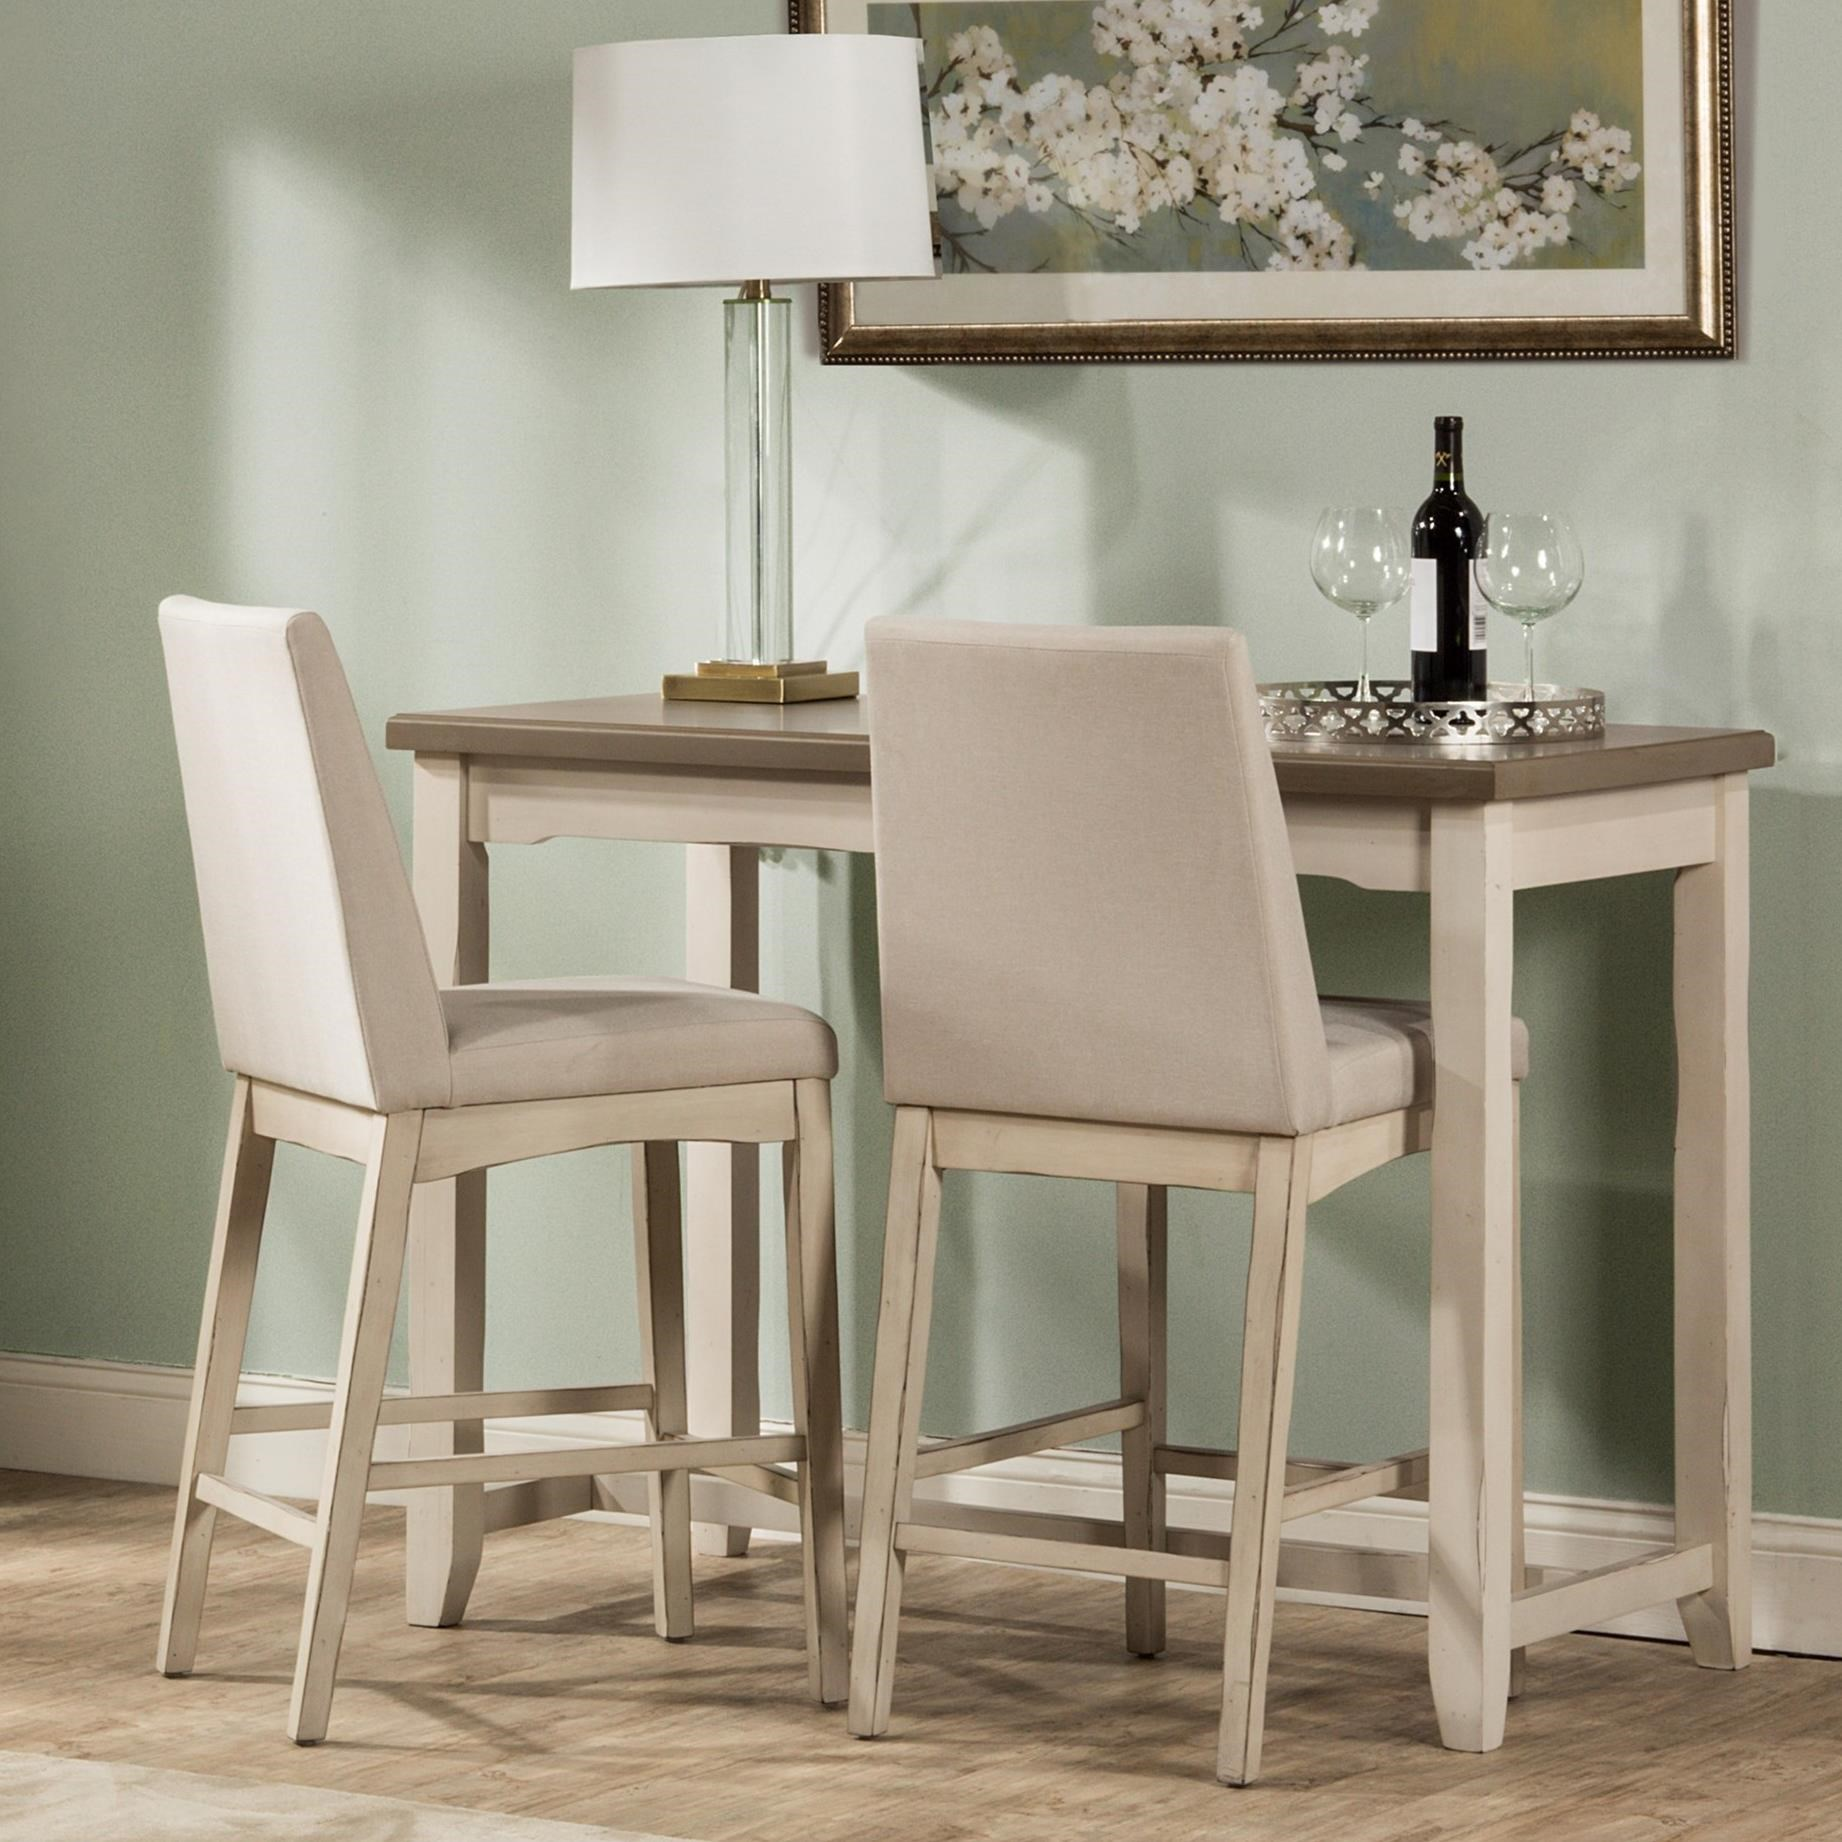 Clarion 3-Piece Counter Height Dining Set at Ruby Gordon Home